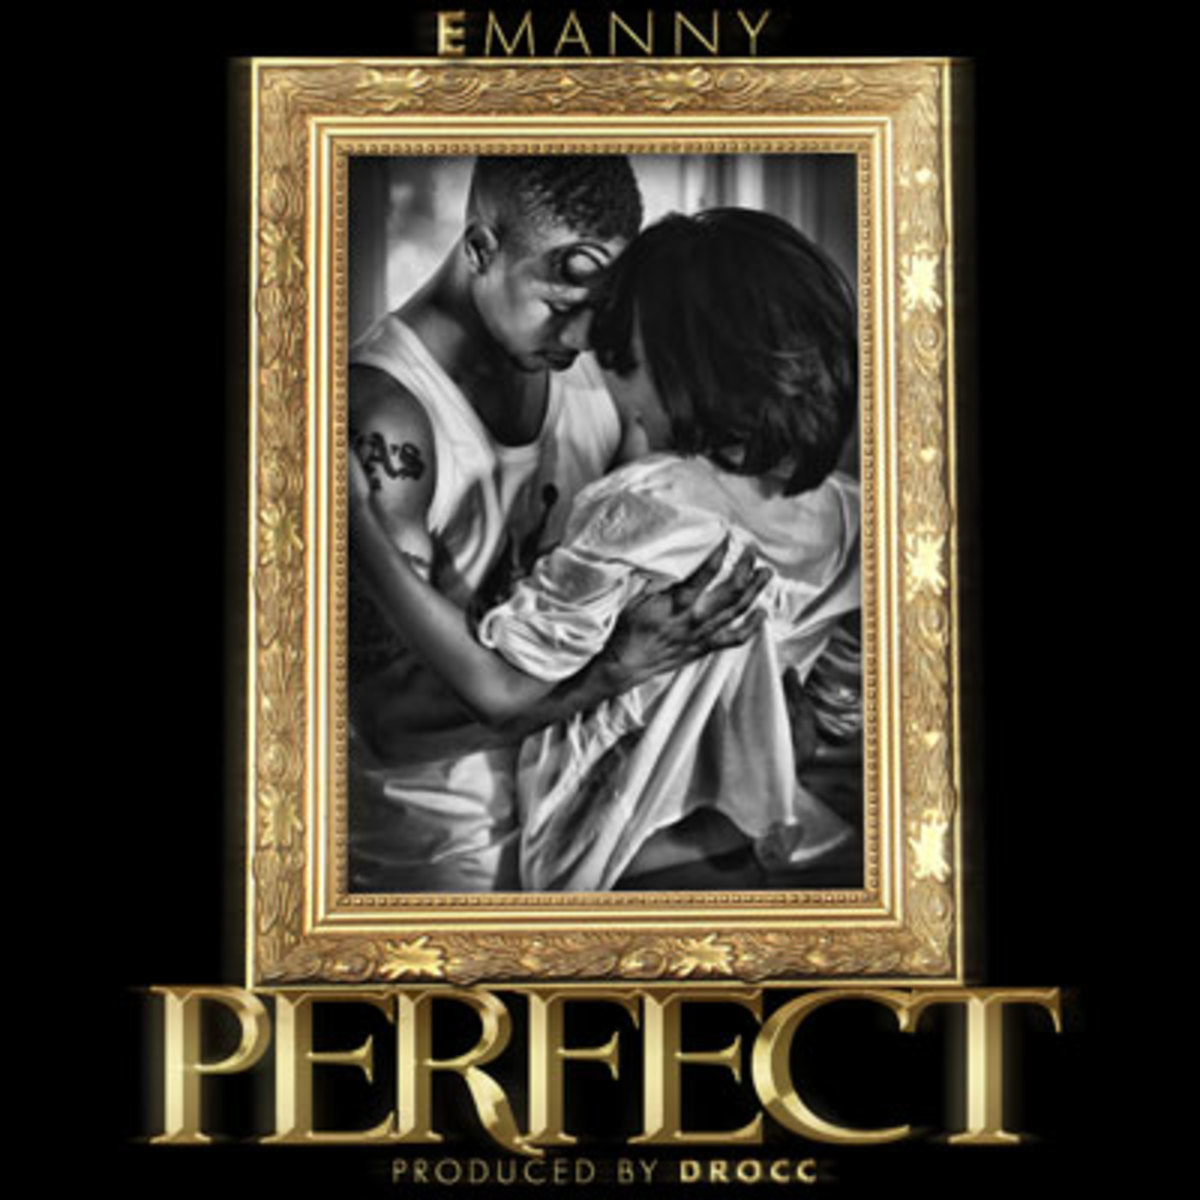 emanny-perfect.jpg